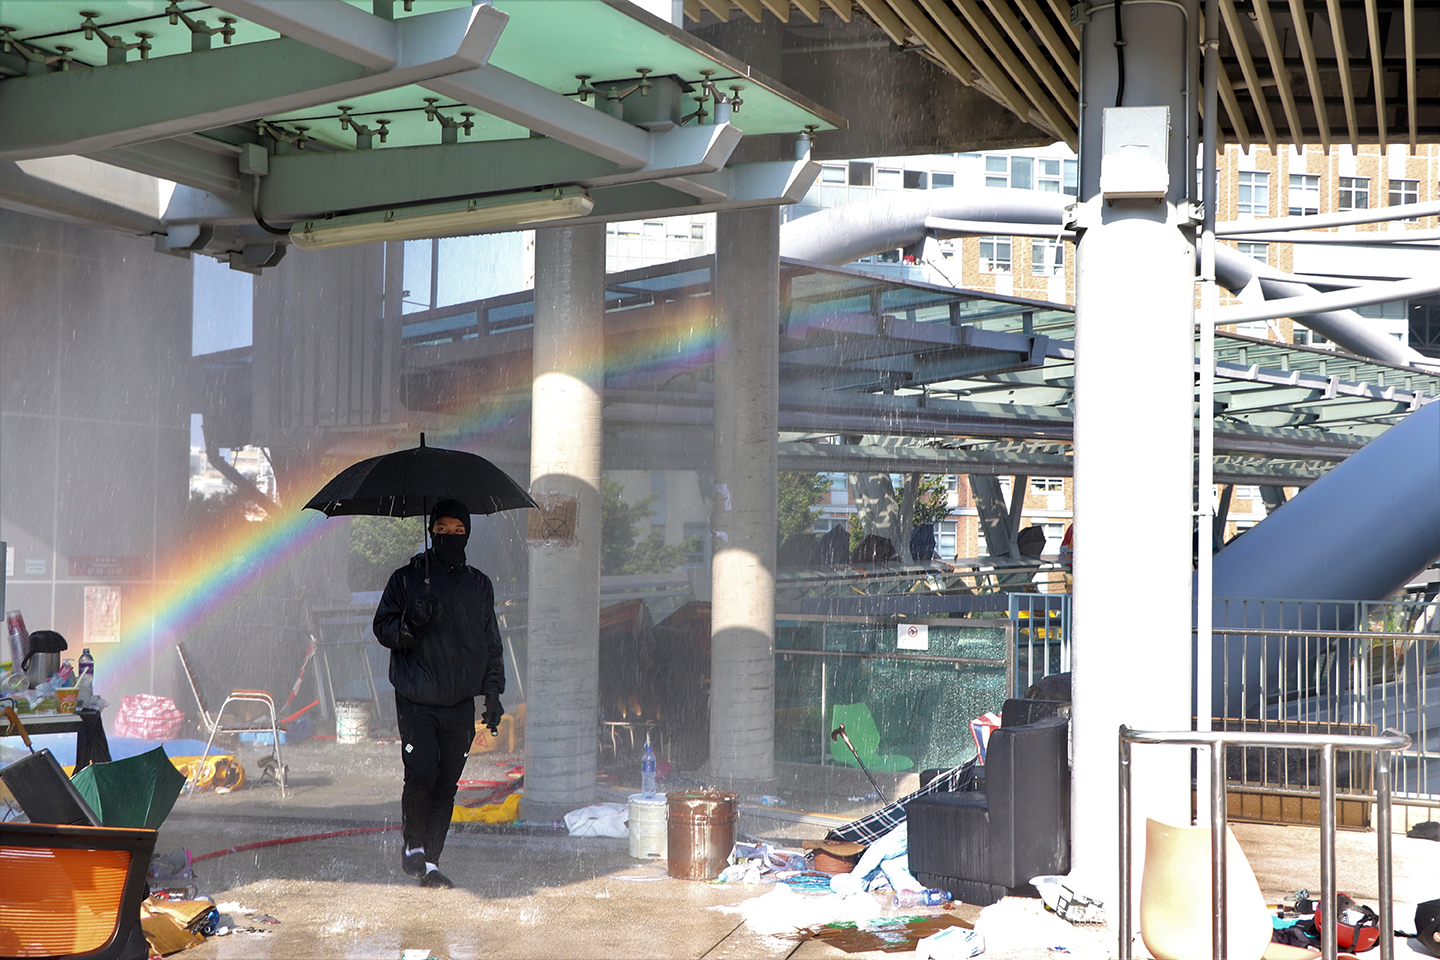 A rainbow forms near the bridge where protesters escape past riot police at the Hong Kong Polytechnic University (PolyU) campus that had been on lockdown for a week in Hong Kong, November 19, 2019